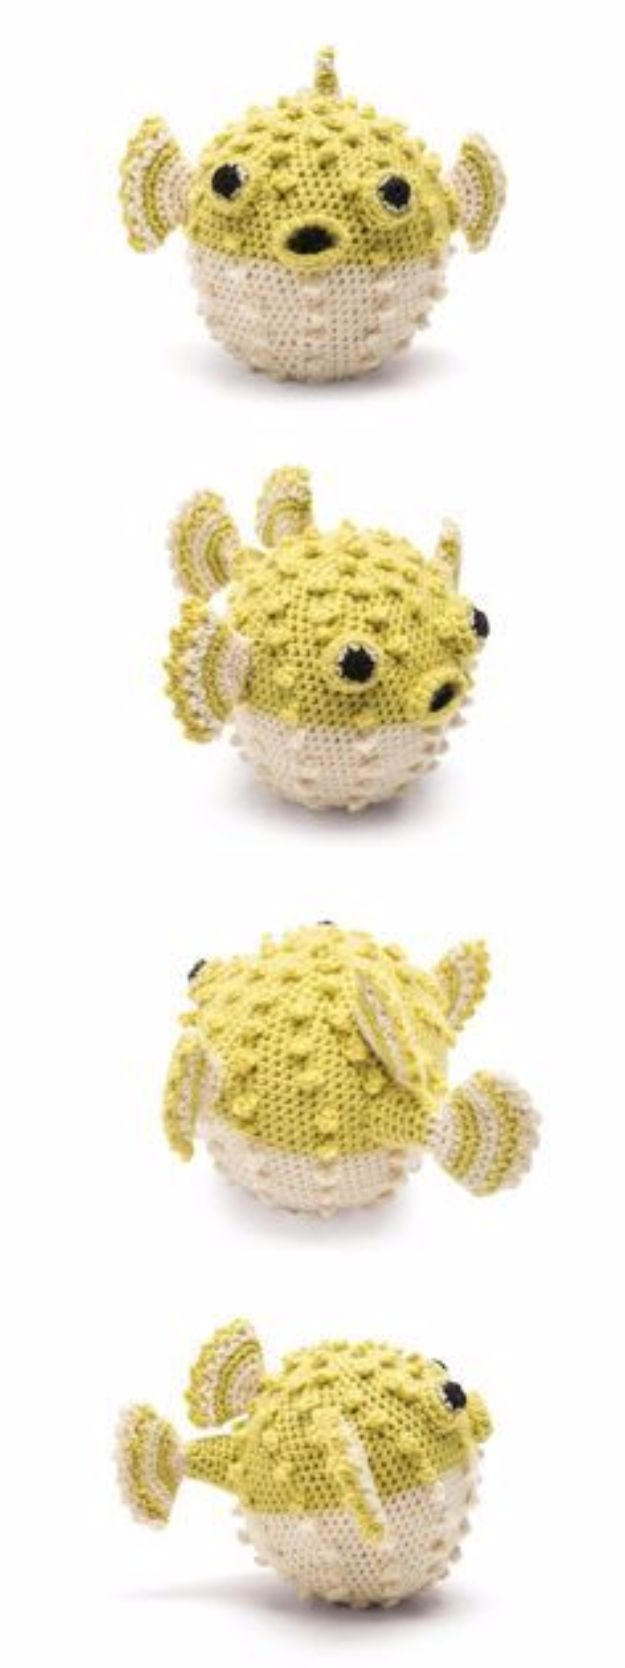 Free Amigurumi Patterns For Beginners and Pros - Puffer Fish Amigurumi - Easy Amigurimi Tutorials With Step by Step Instructions - Learn How To Crochet Cute Amigurimi Animals, Doll, Mobile, Mini Elephant, Cat, Dinosaur, Owl, Bunny, Dog - Creative Ways to Crochet Cool DIY Gifts for Kids, Teens, Baby and Adults http://diyjoy.com/free-amigurumi-patterns